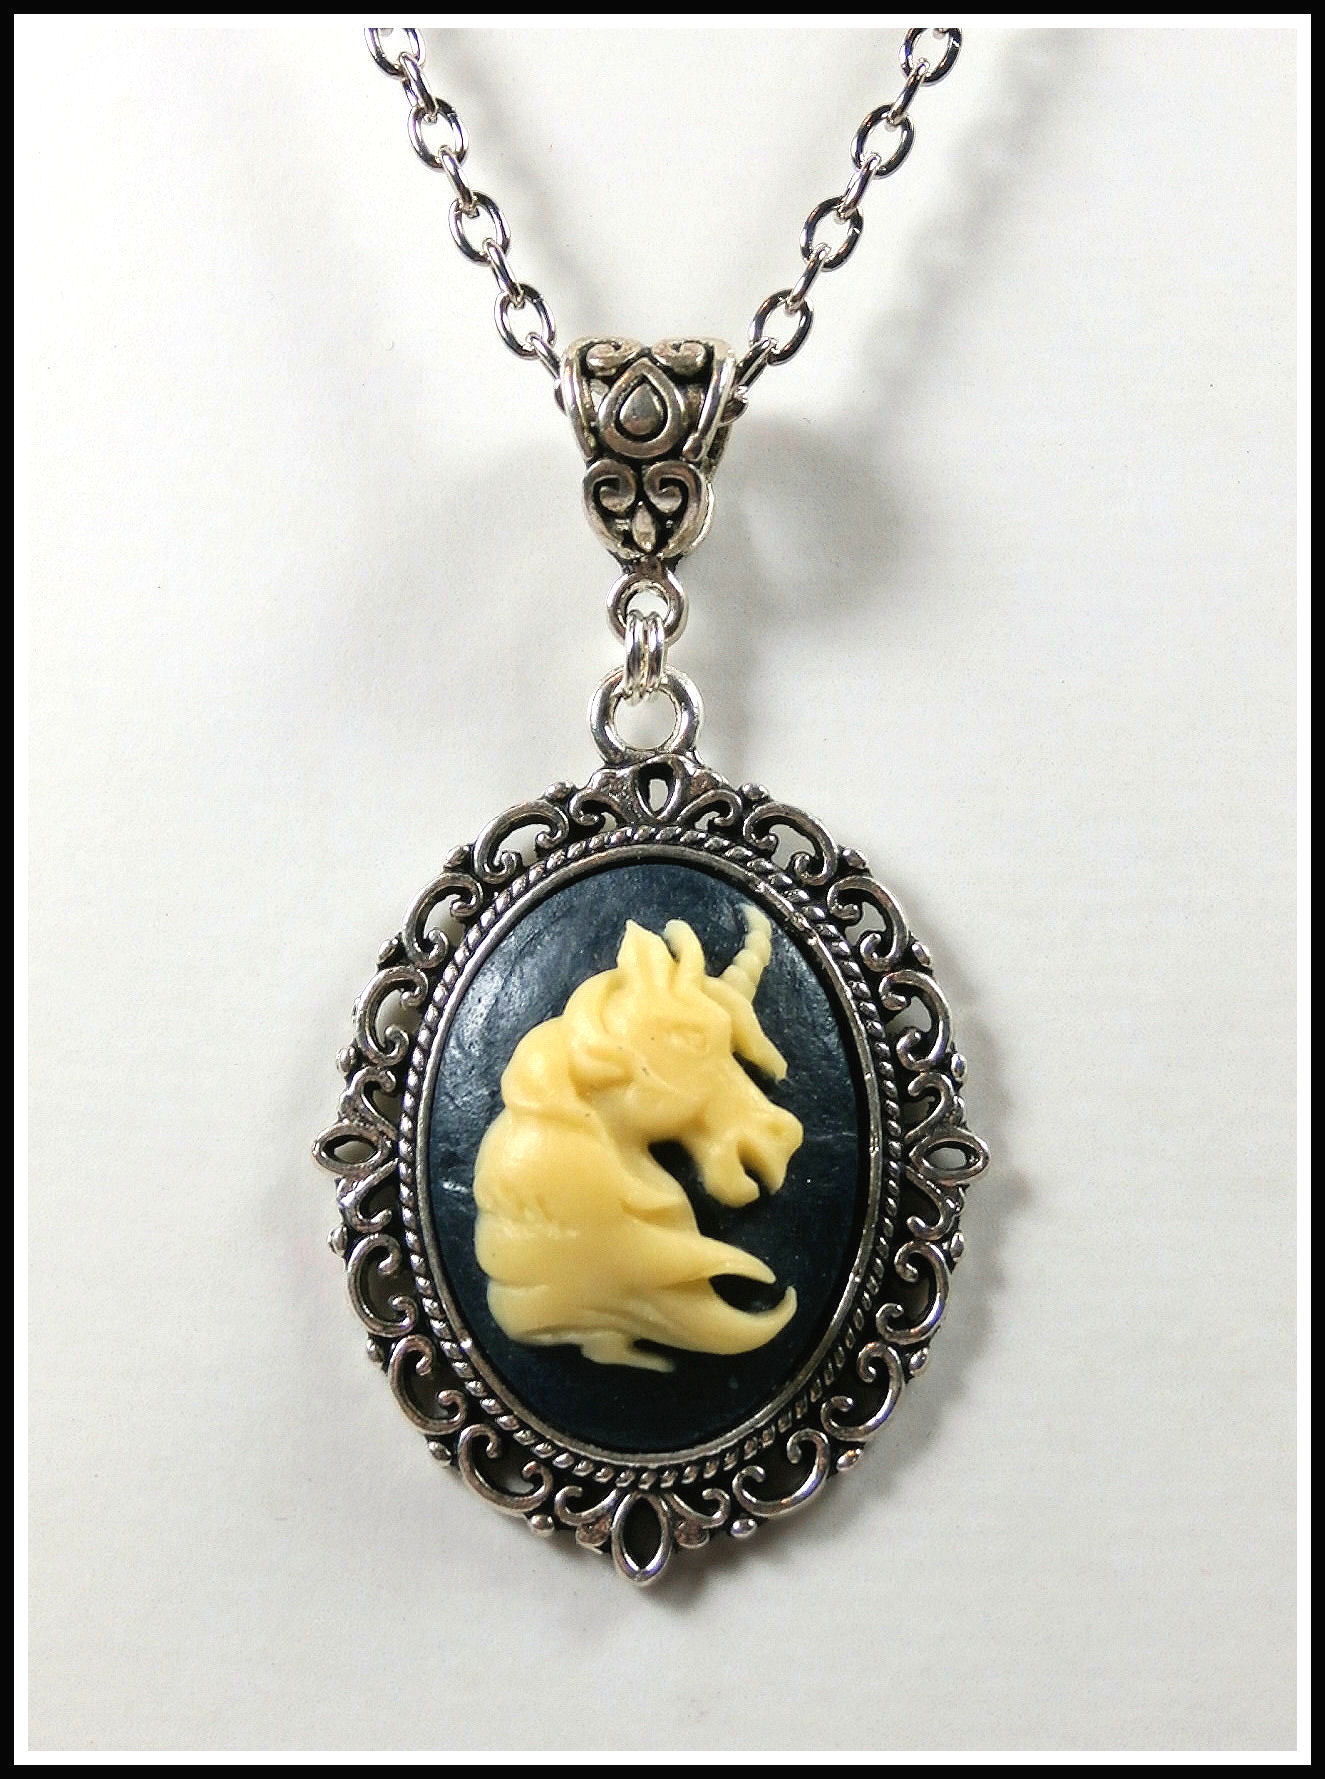 kette medaillon silbereinhorn 40 45 cm. Black Bedroom Furniture Sets. Home Design Ideas